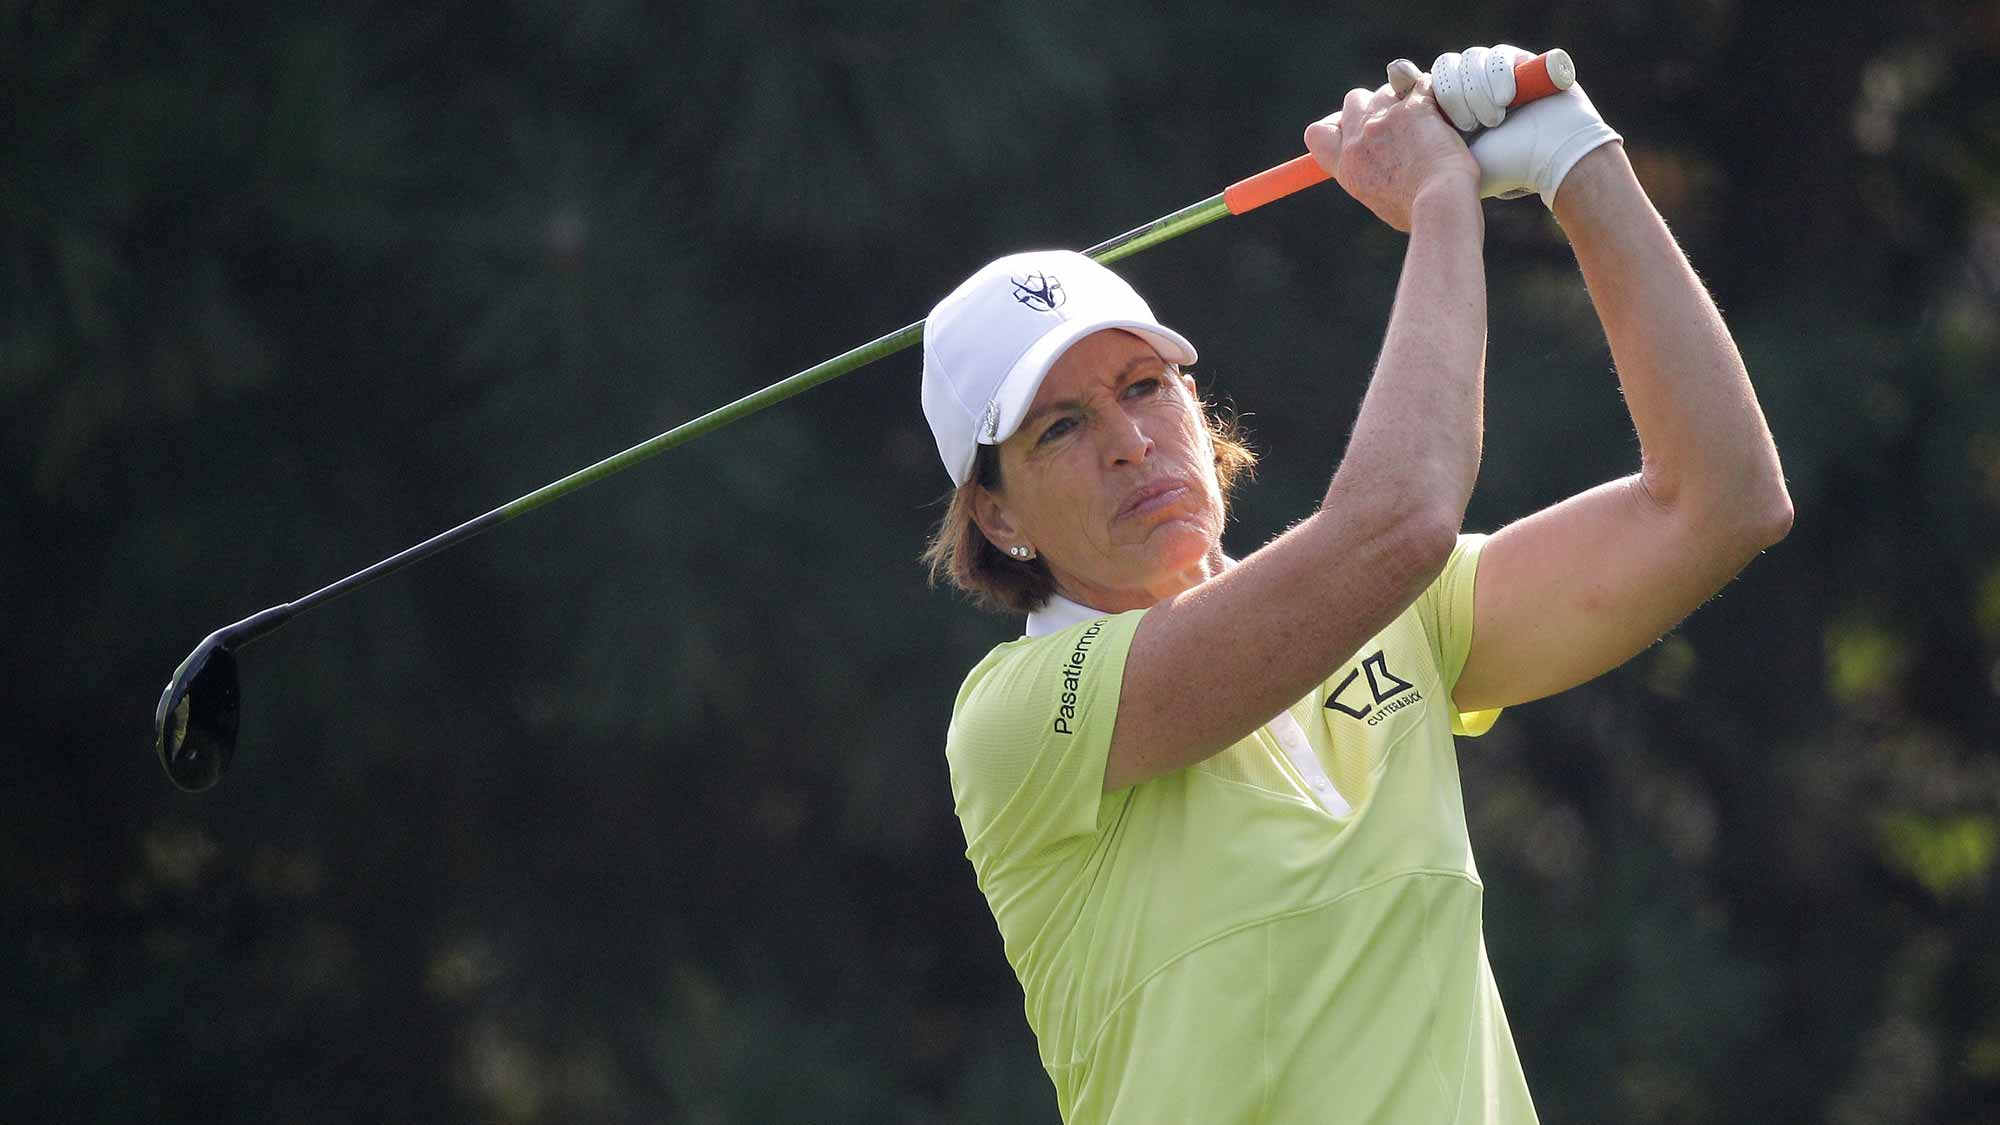 Juli Inkster of United States plays a tee shot on the 4th hole during round two of the LPGA KEB Hana Bank Championship